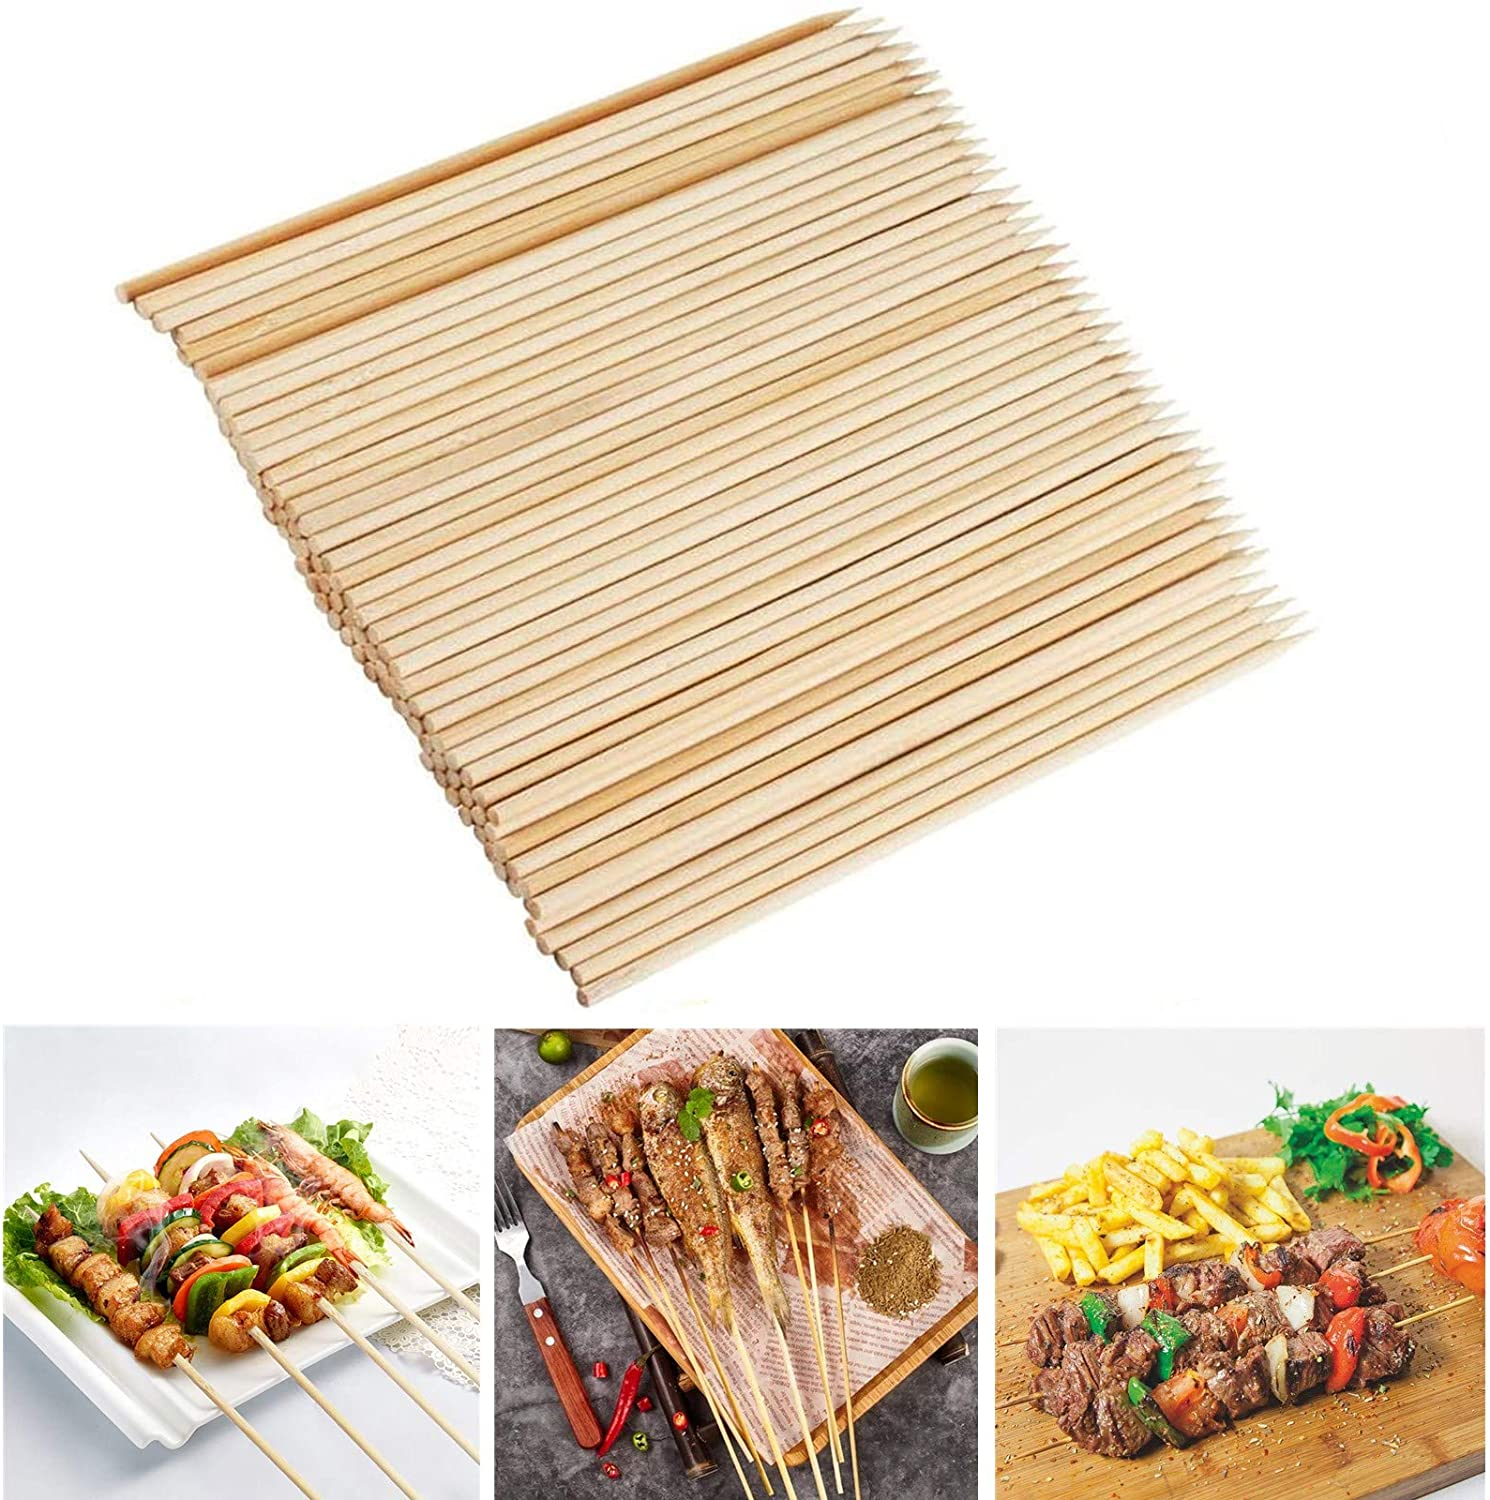 Amazon Com Fu Store Bamboo Skewers 8 Inch Bamboo Sticks Shish Kabob Skewers Grill Appetizer Fruit Corn Chocolate Fountain Cocktail Art Set Of 100 Pack With Free 10 Pairs Of Gloves Garden Outdoor